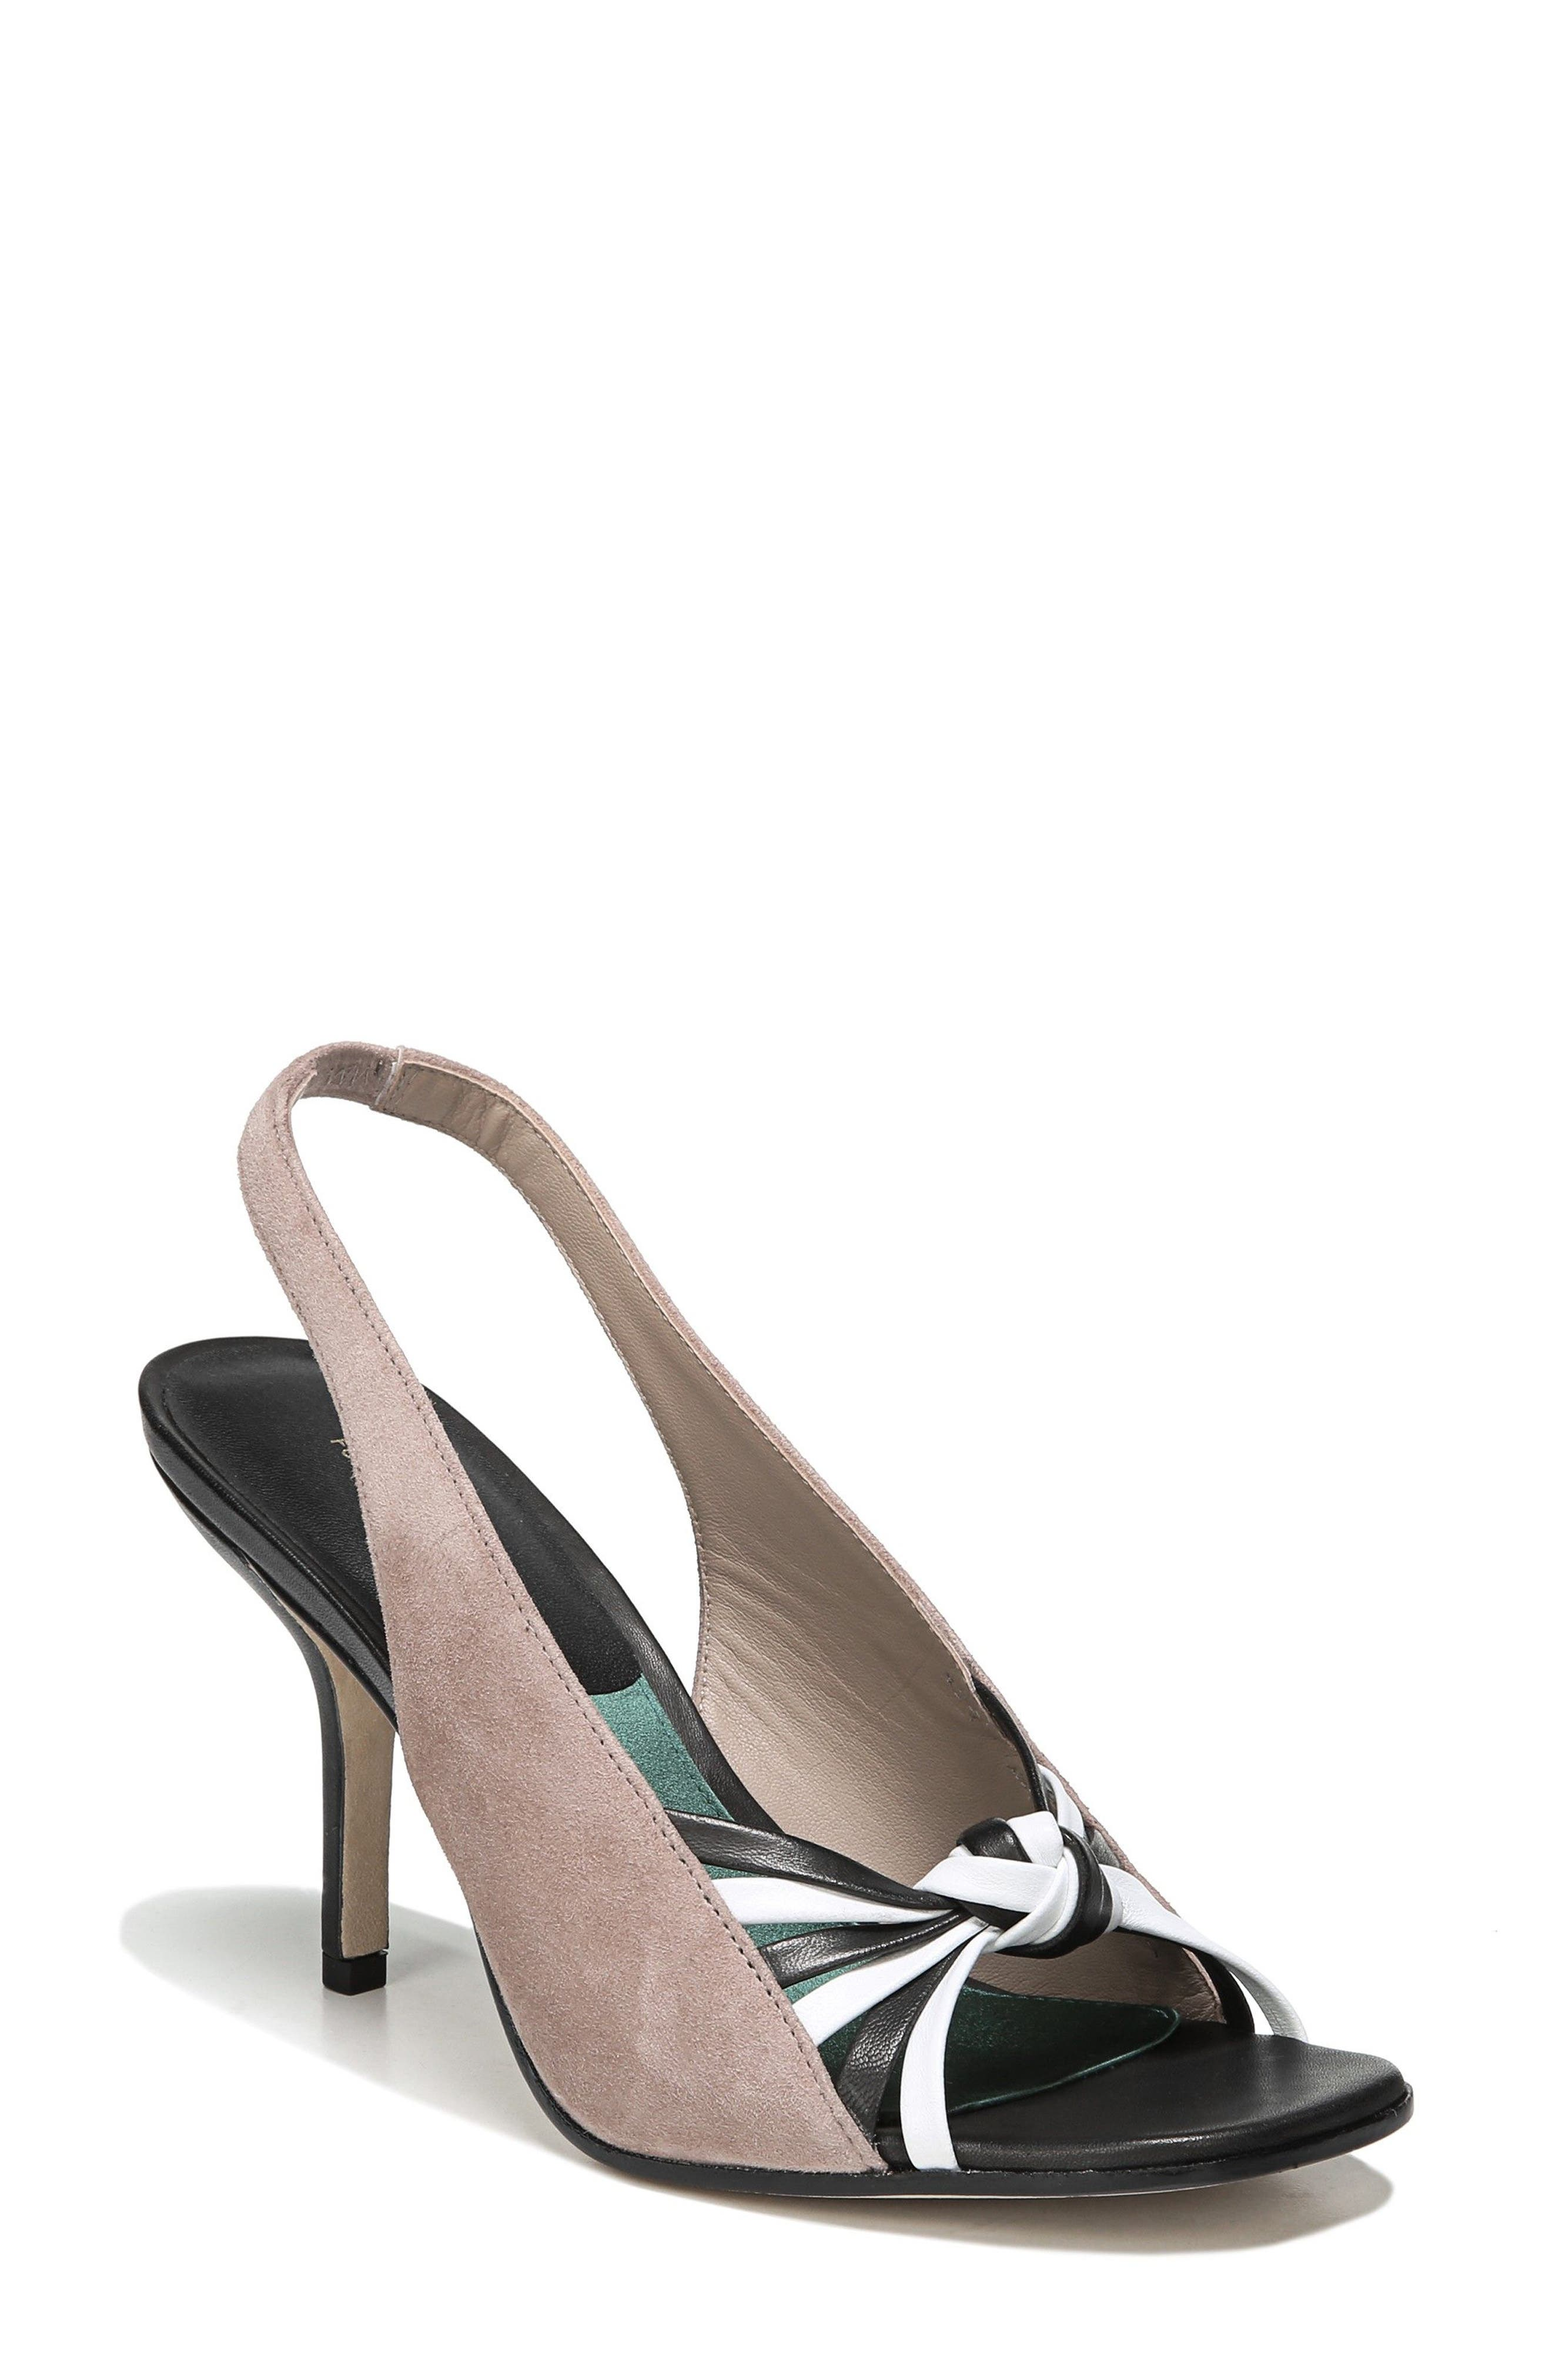 Alternate Image 1 Selected - Diane Von Furstenberg Farah Slingback Pump (Women)